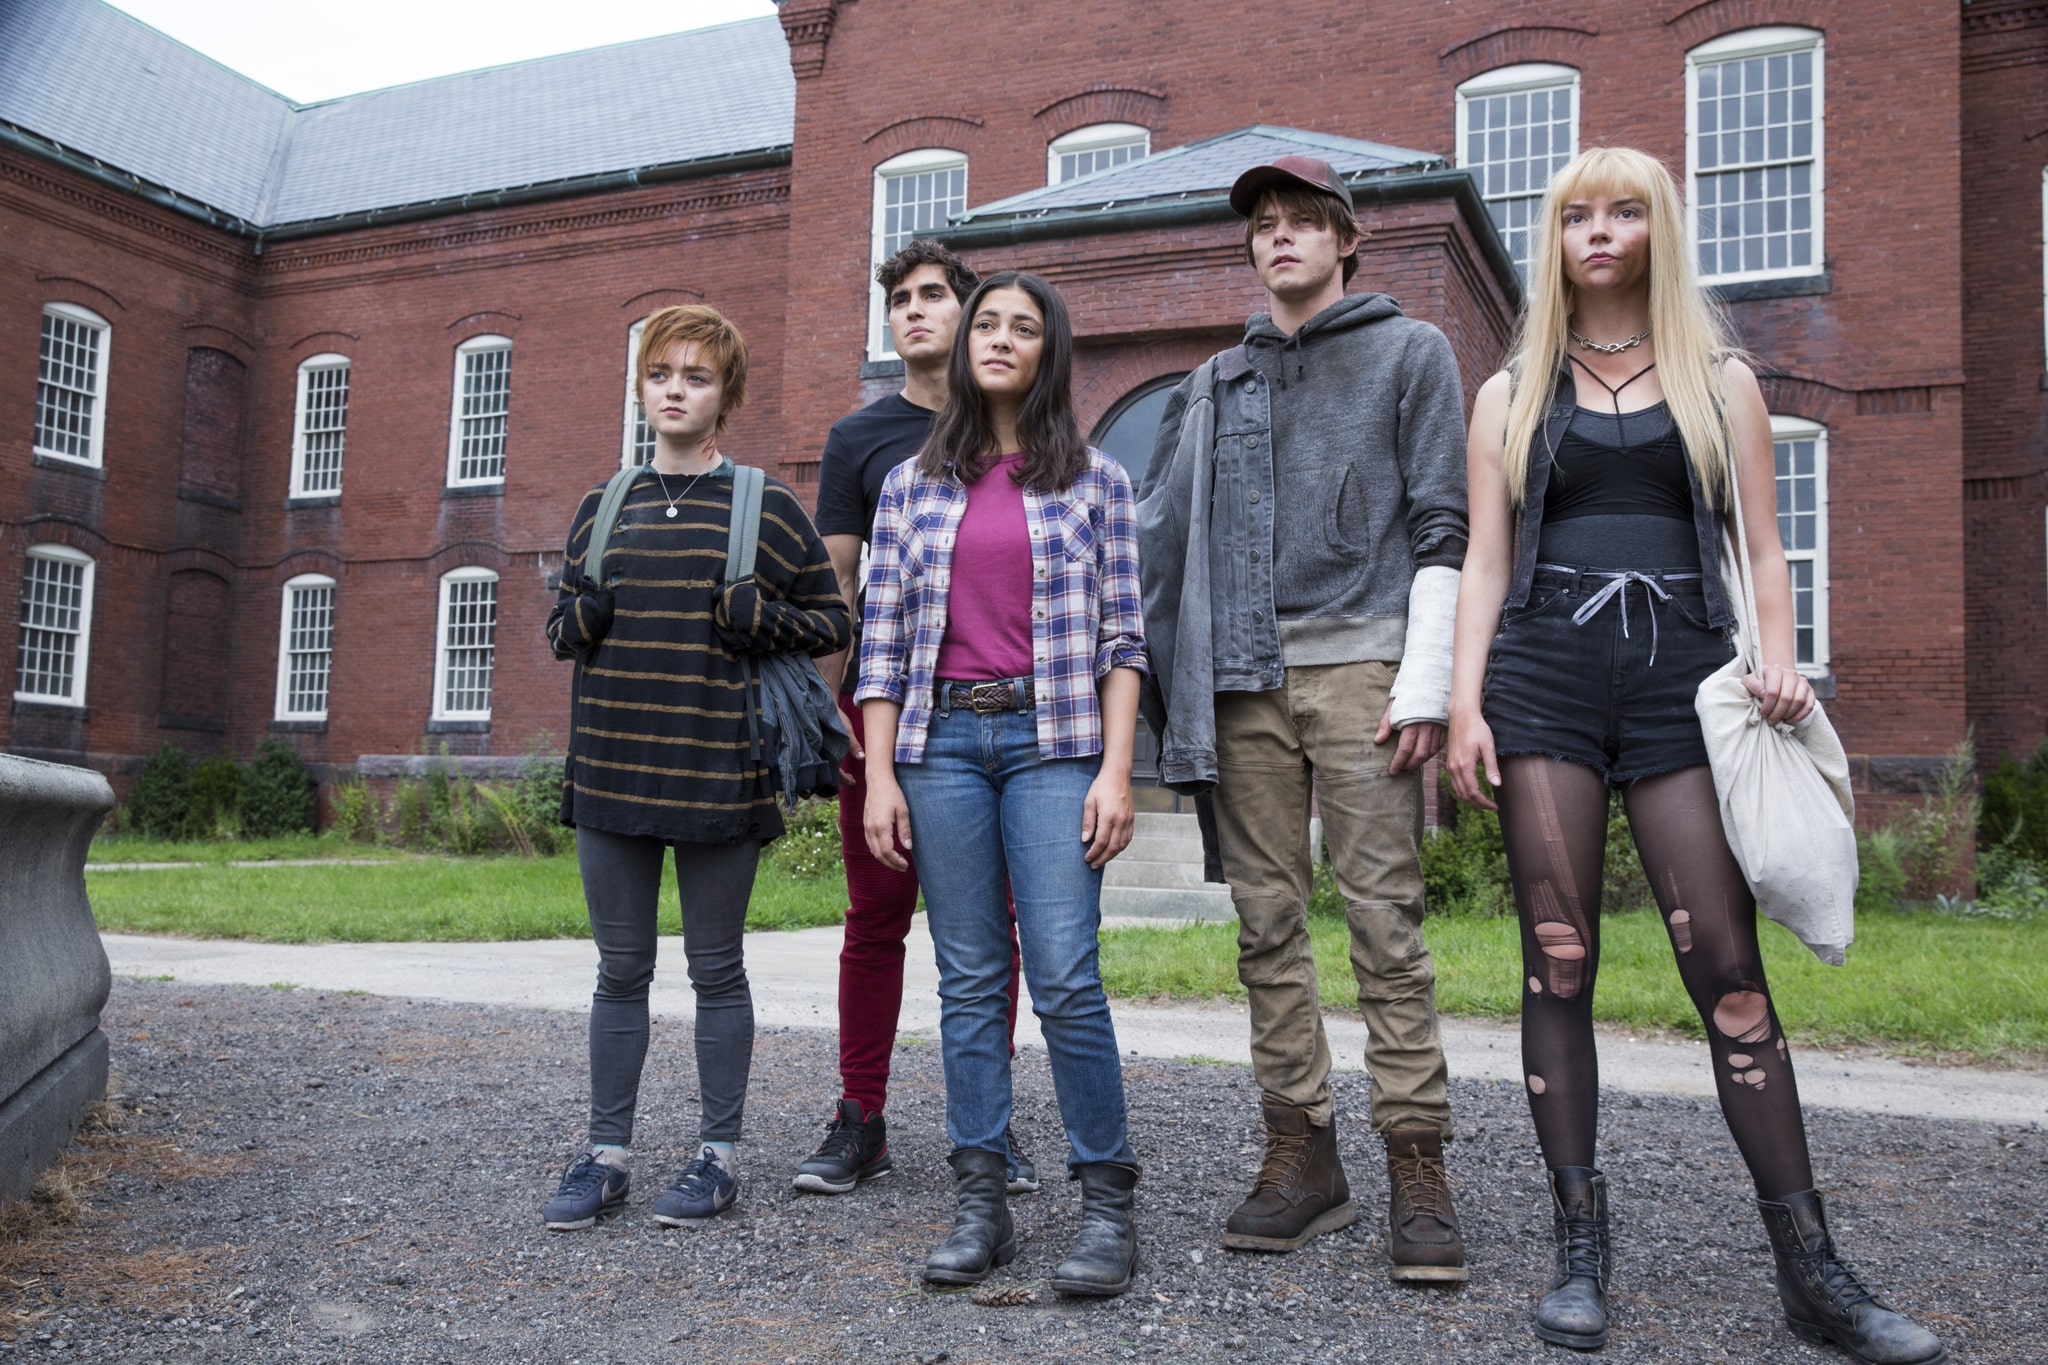 [Article] THE NEW MUTANTS Talk Filming Inside a Psychiatric Hospital